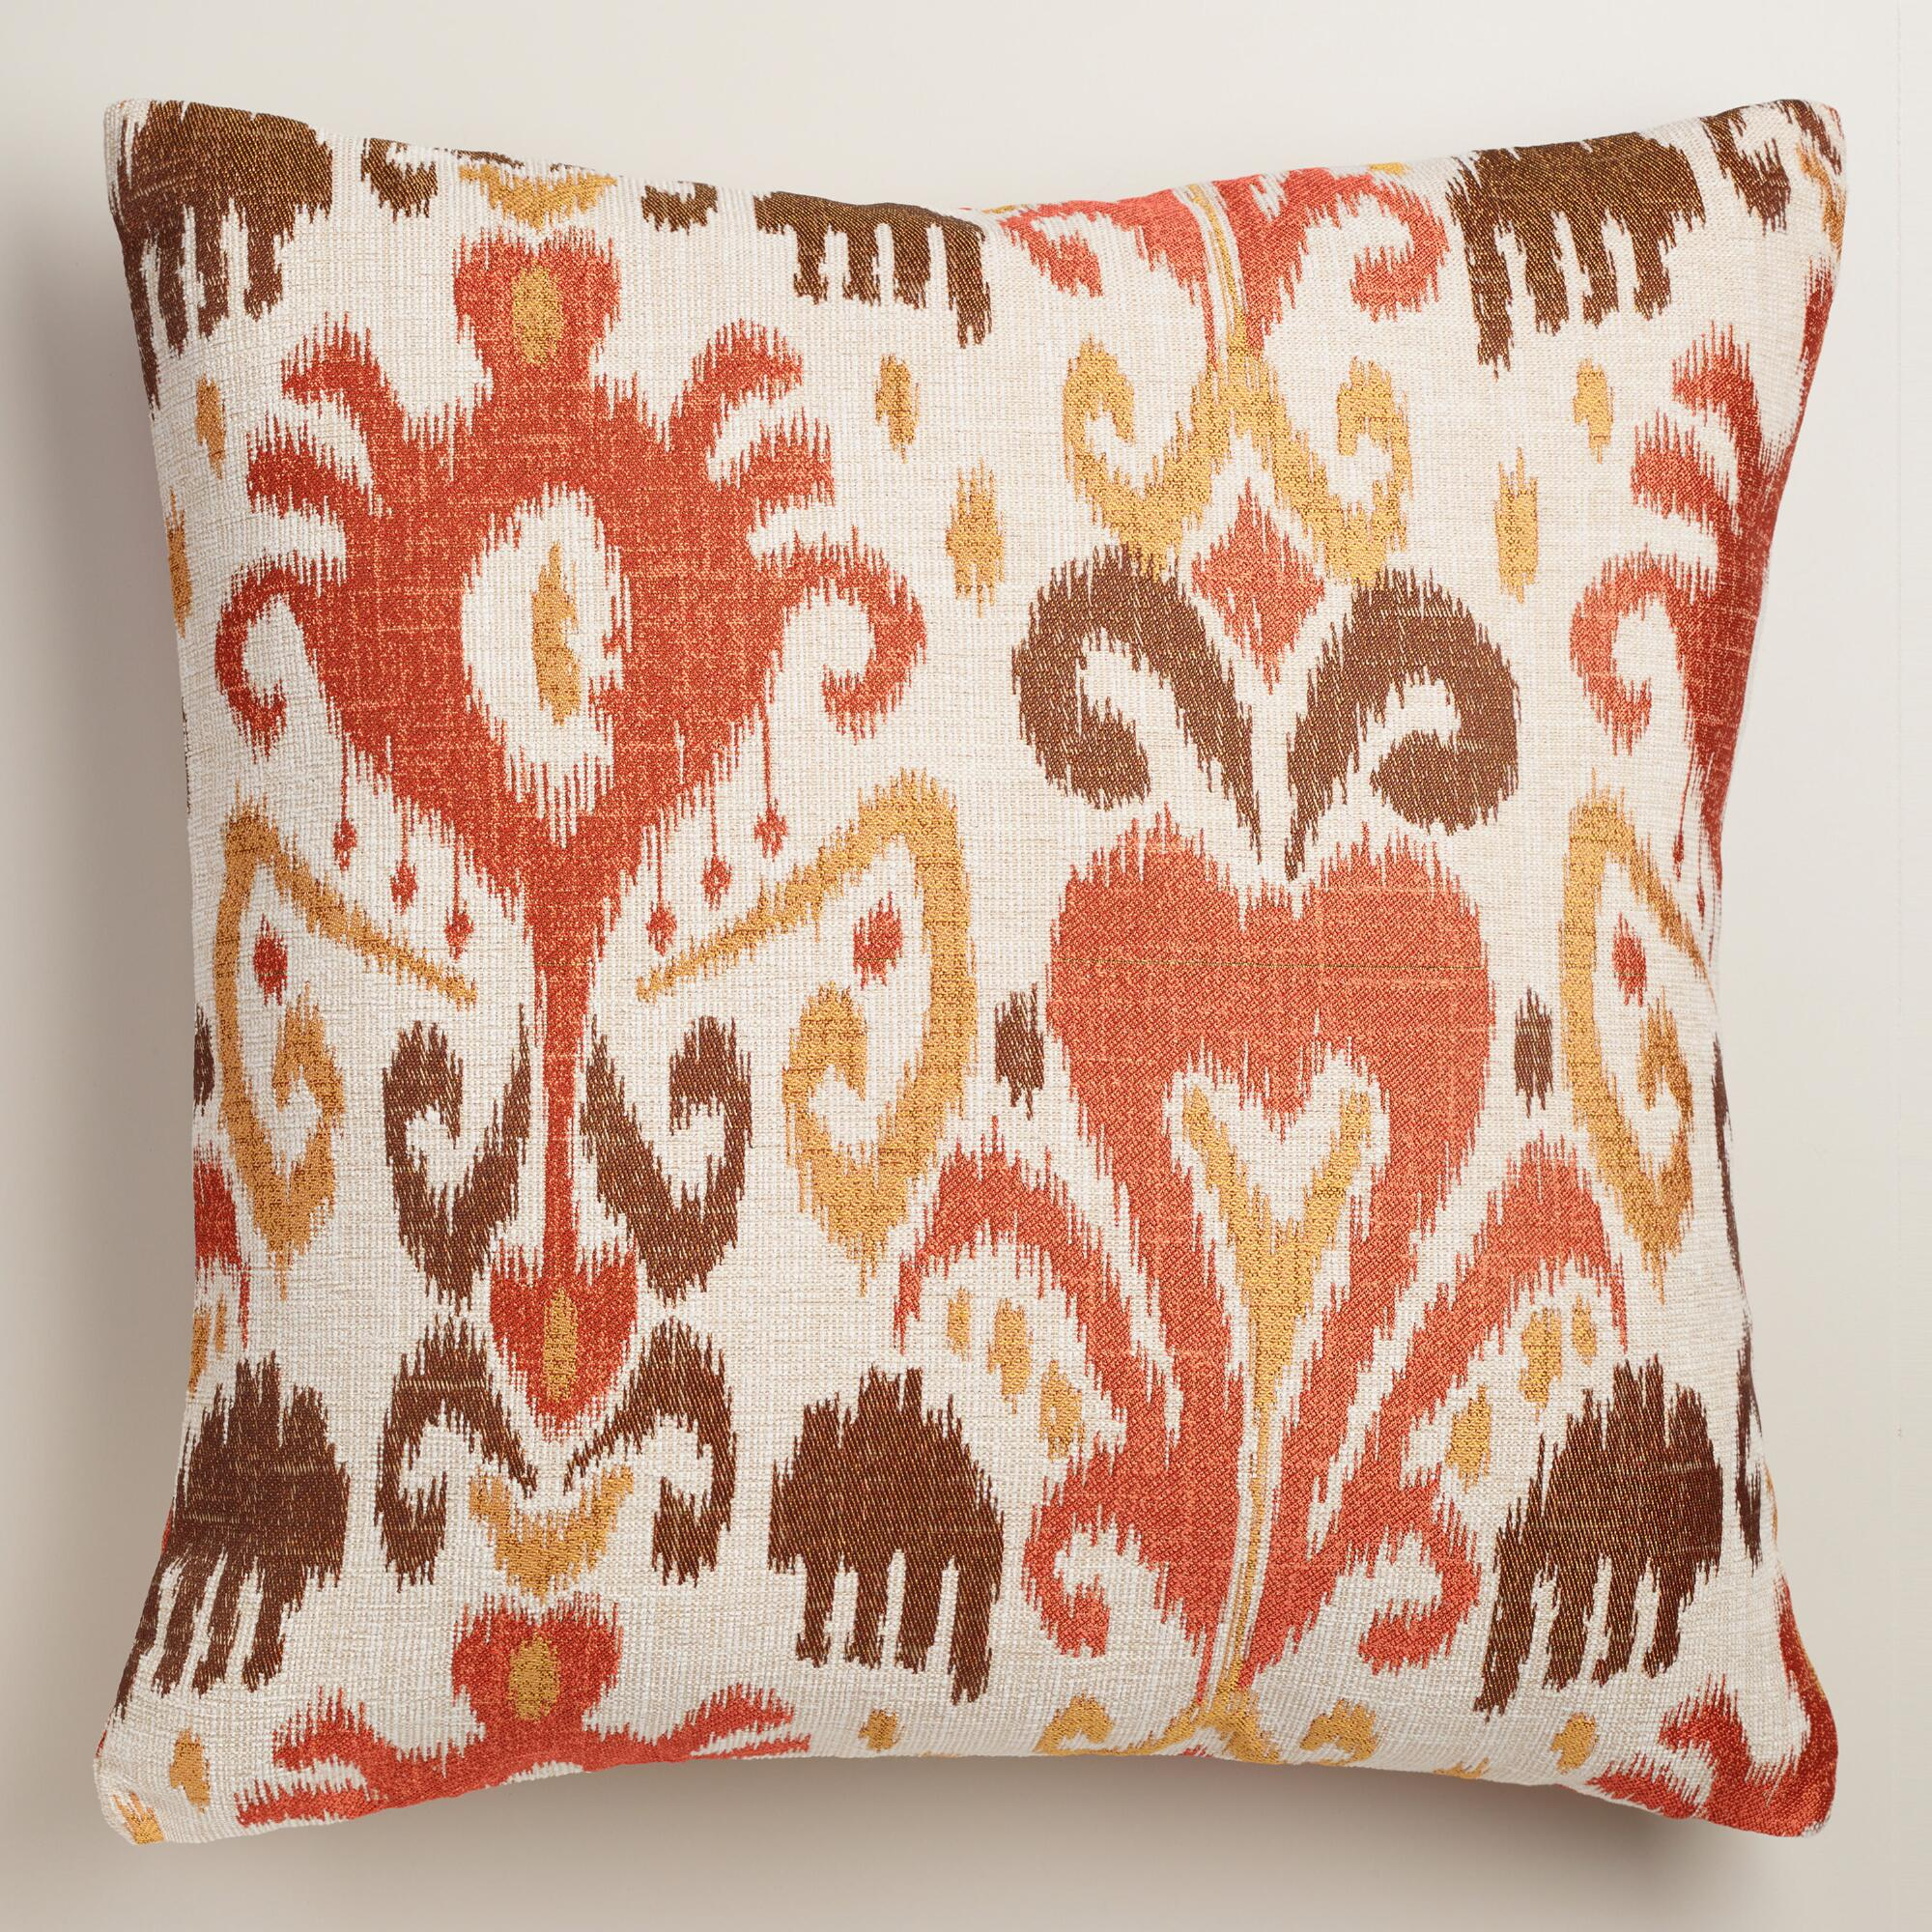 Jacquard Throw Pillows : Warm Ikat Jacquard Throw Pillow World Market